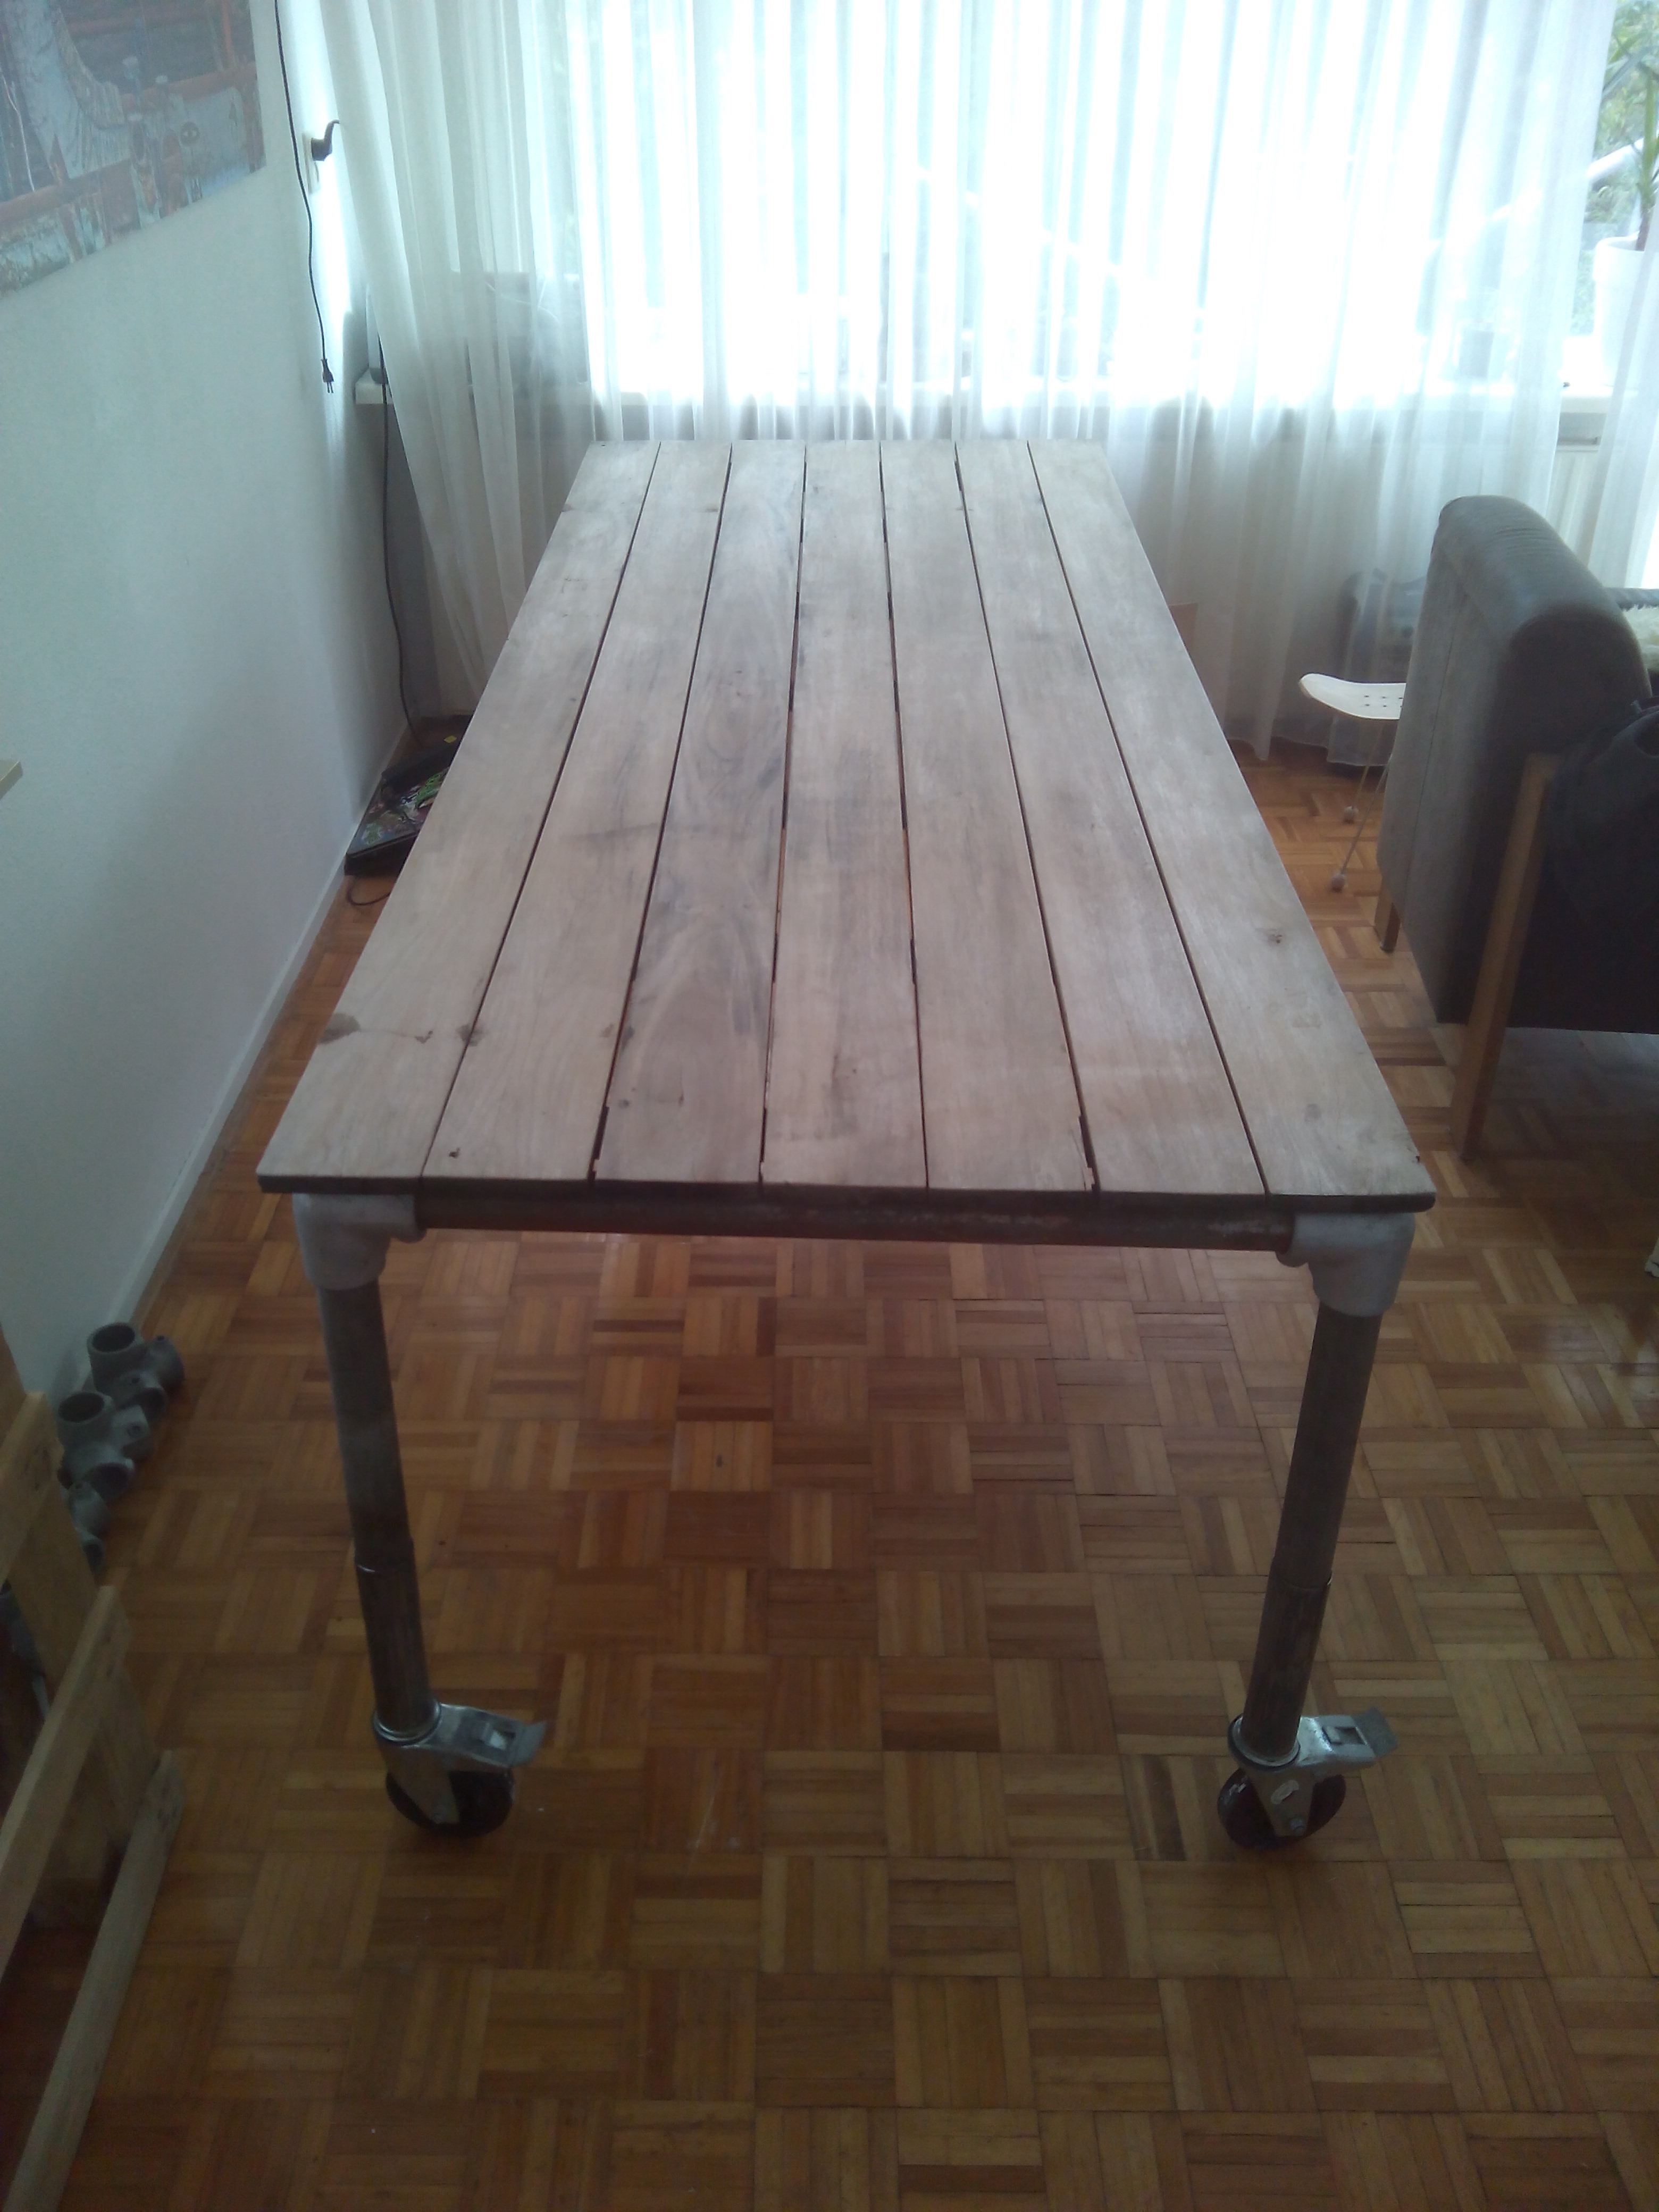 Picture of Garden Tabletop to Big Diner Table With Scaffolding Frame.